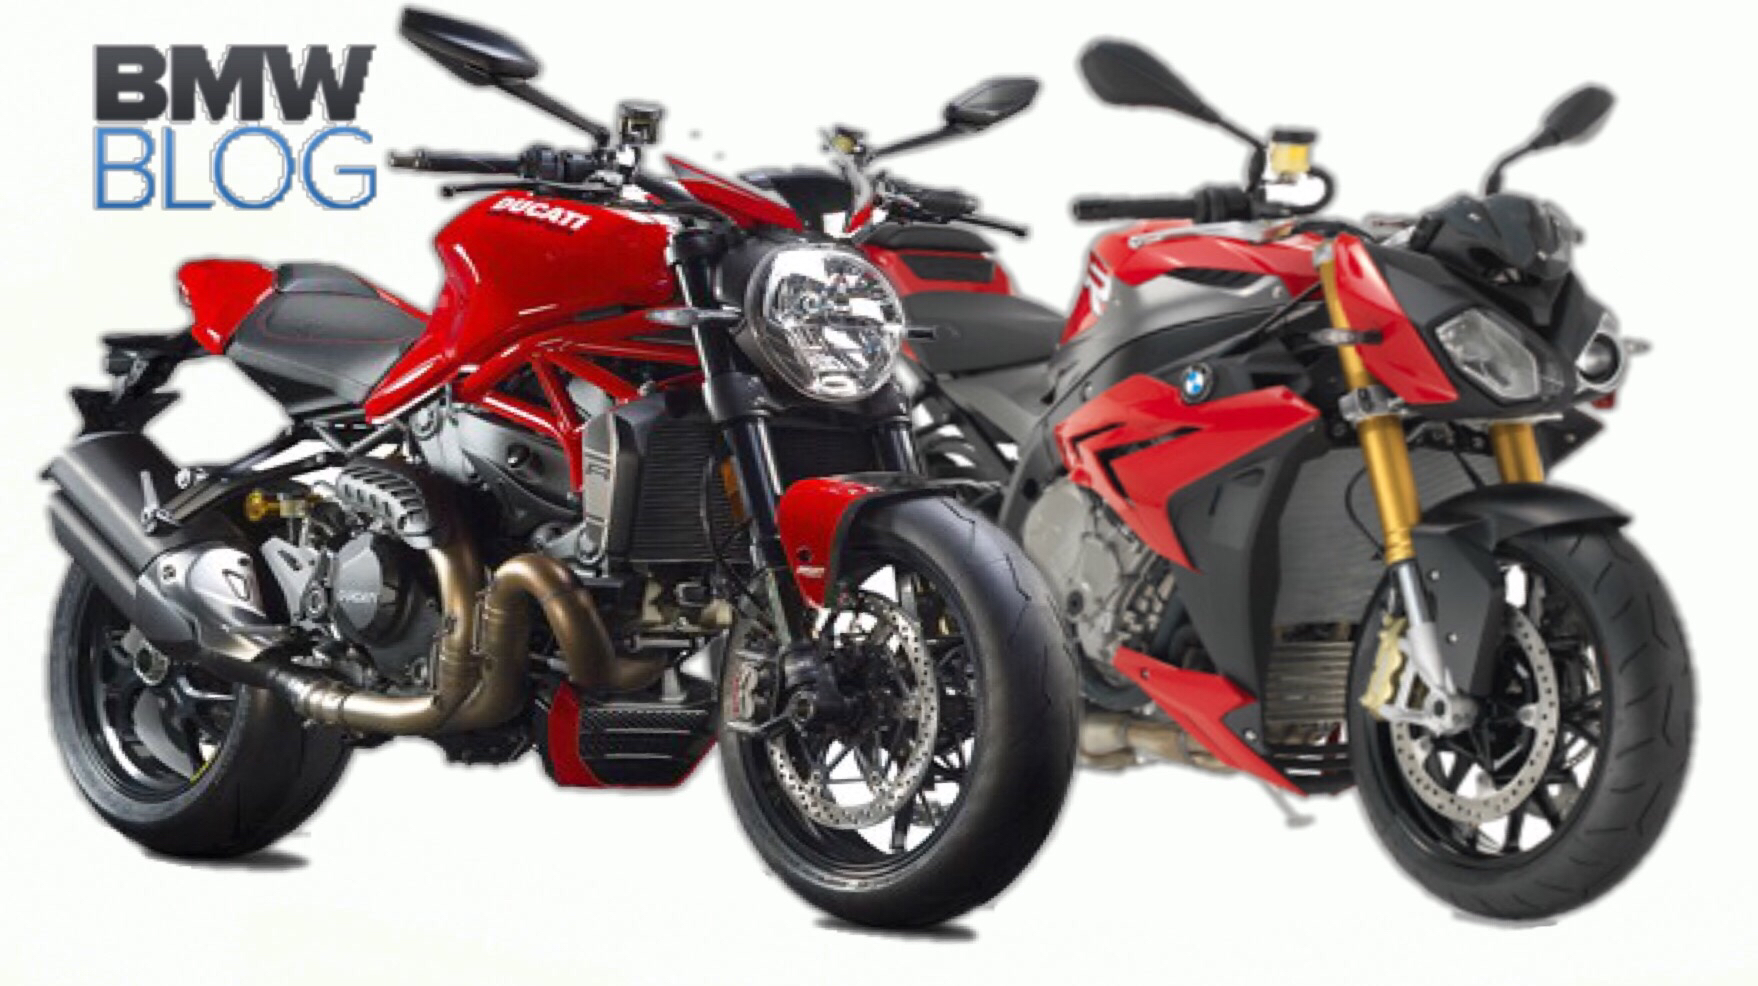 ducati monster 1200 r takes on the bmw s 1000 r. Black Bedroom Furniture Sets. Home Design Ideas